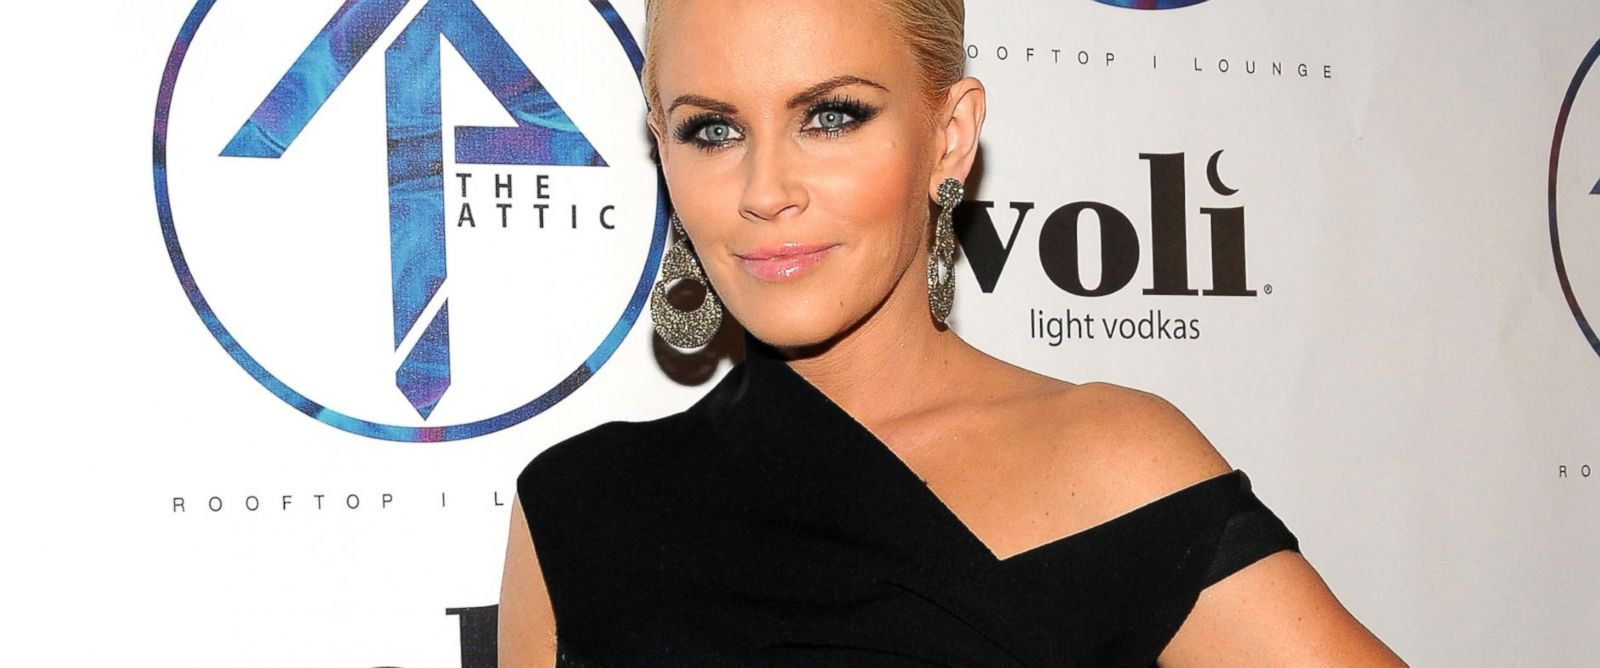 PHOTO: Jenny McCarthy attends the grand opening of The Attic Rooftop Lounge, June 11, 2014, in New York.